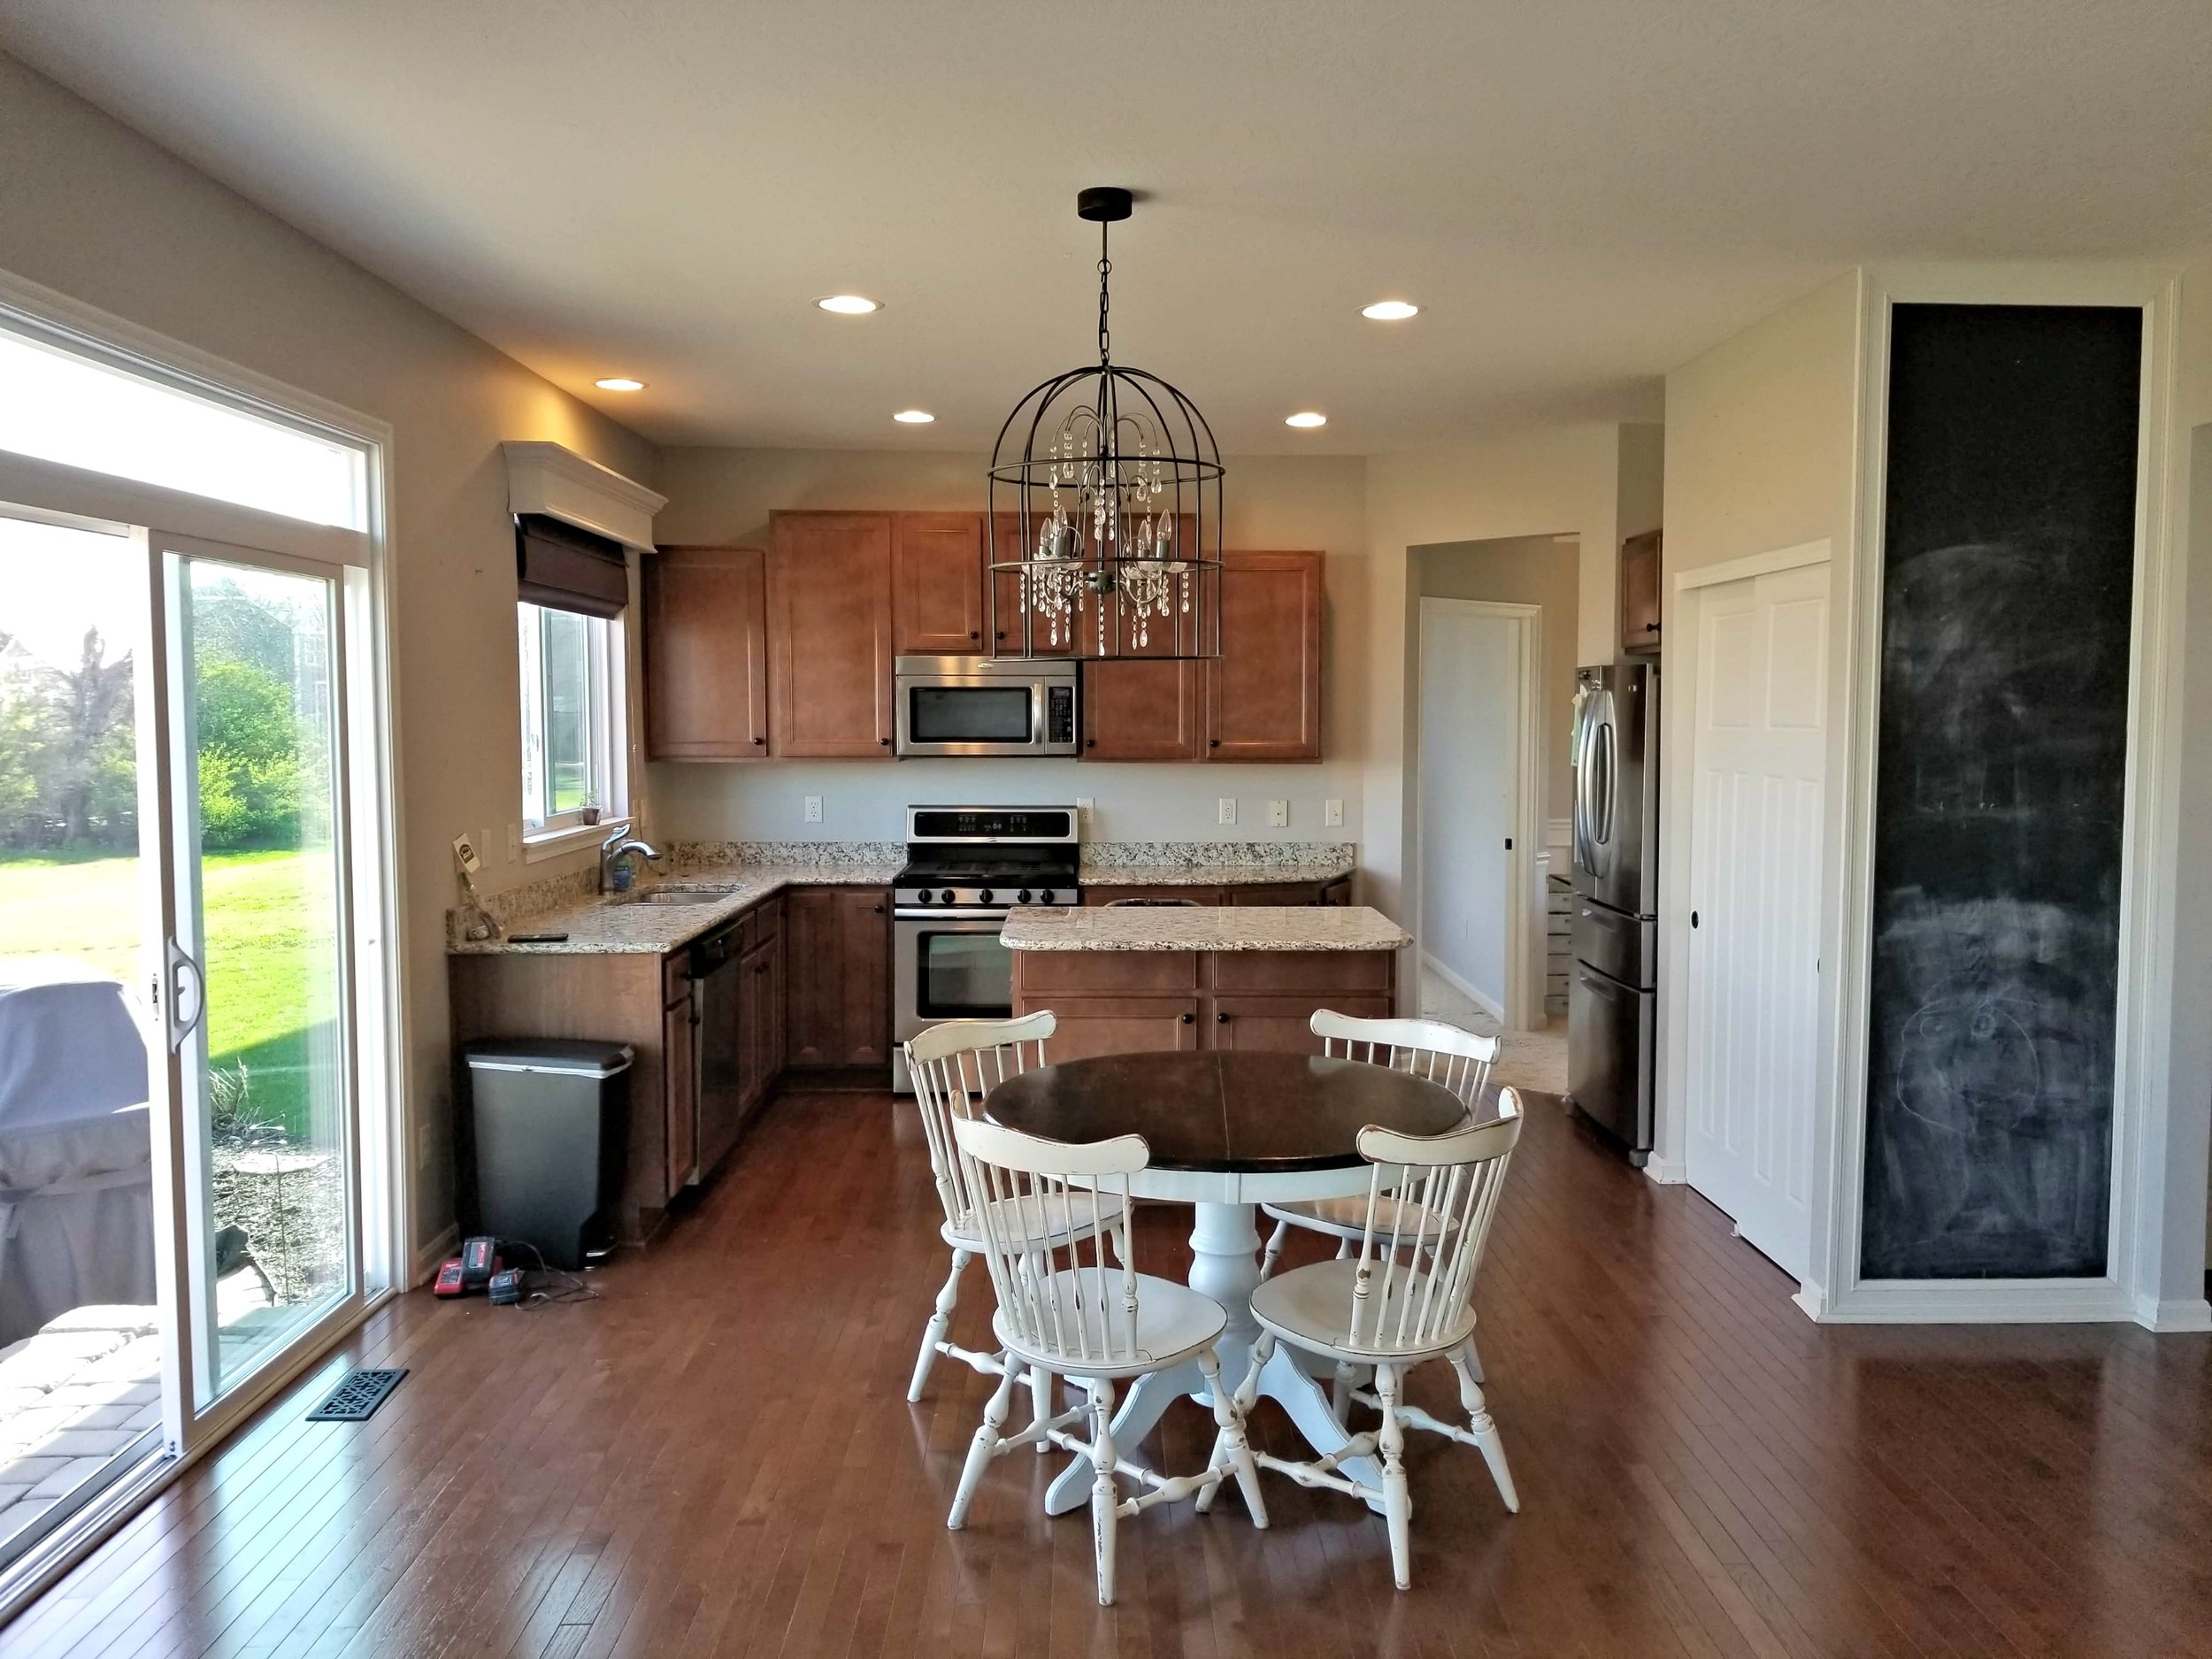 - This incredible space began as two smaller rooms...behind the stove wall there was a small office room...